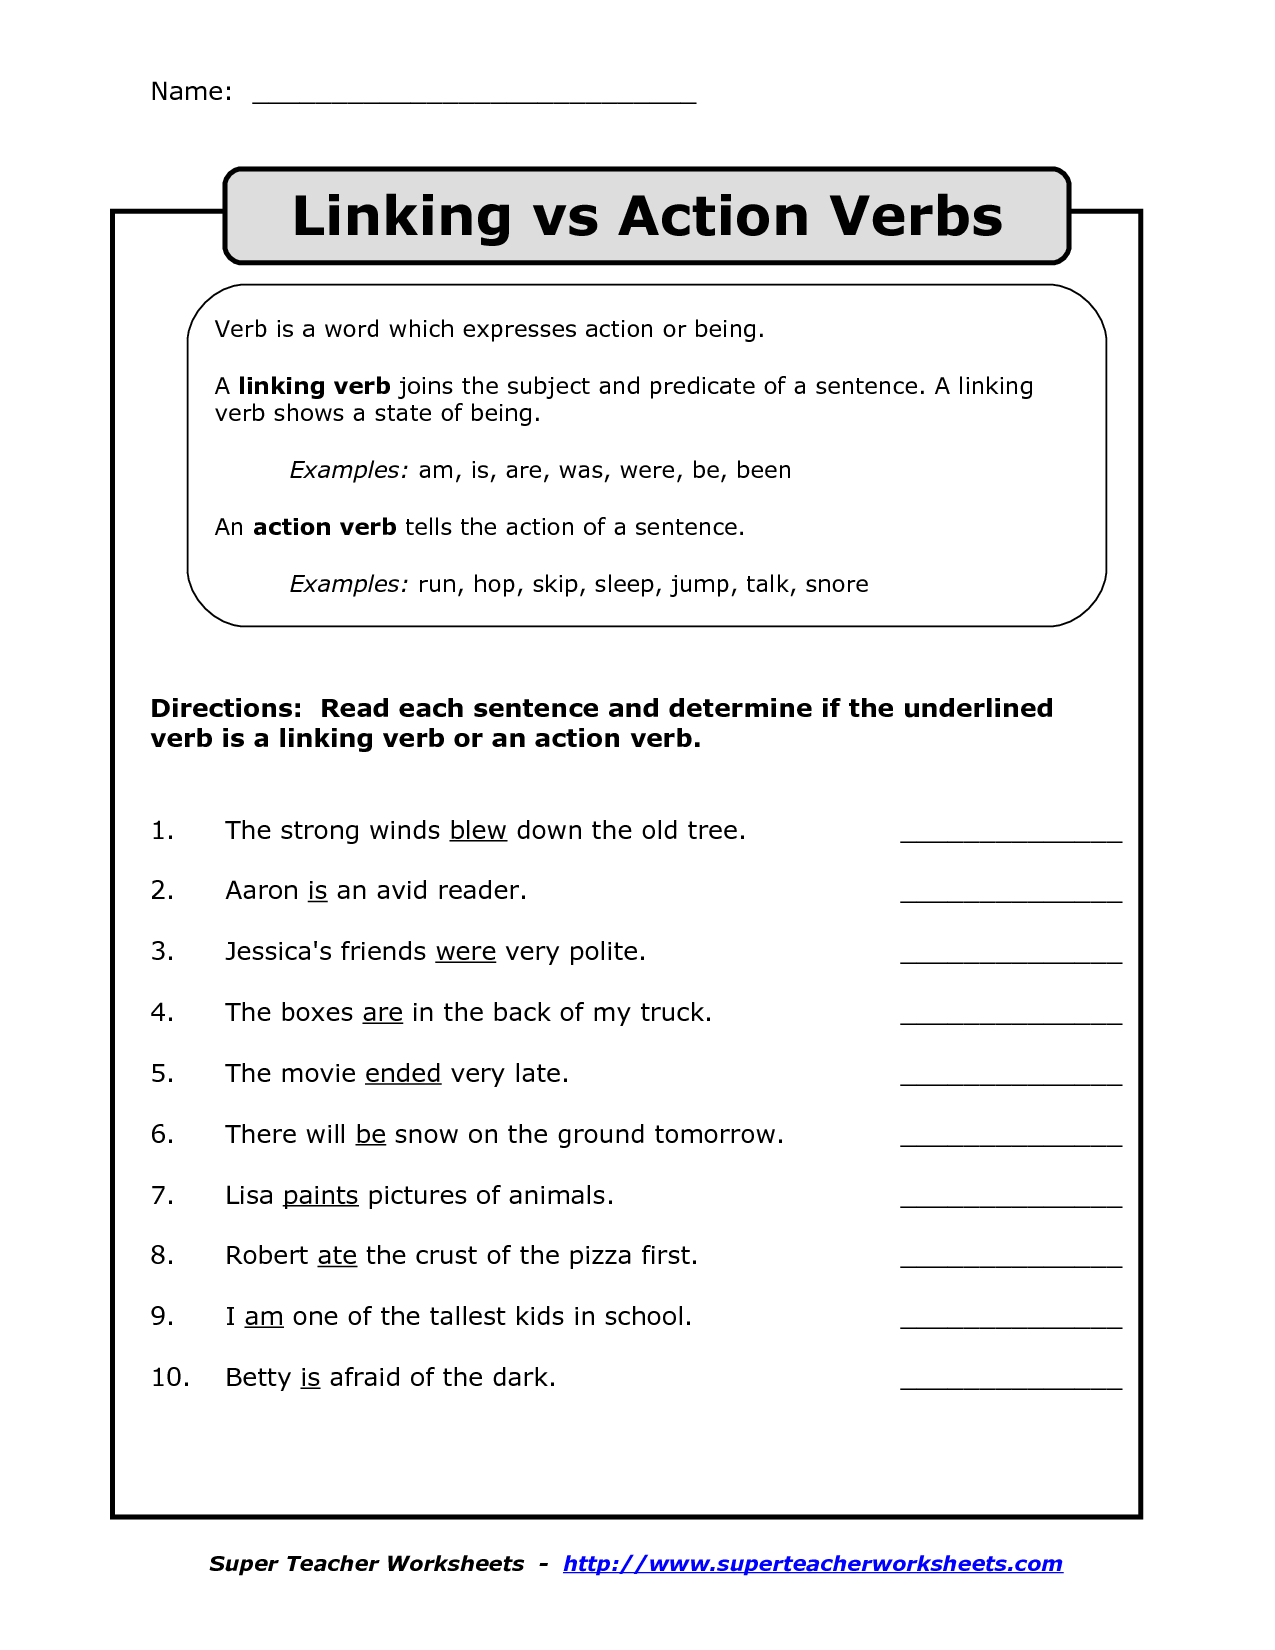 Worksheet About Verbs For Grade 3